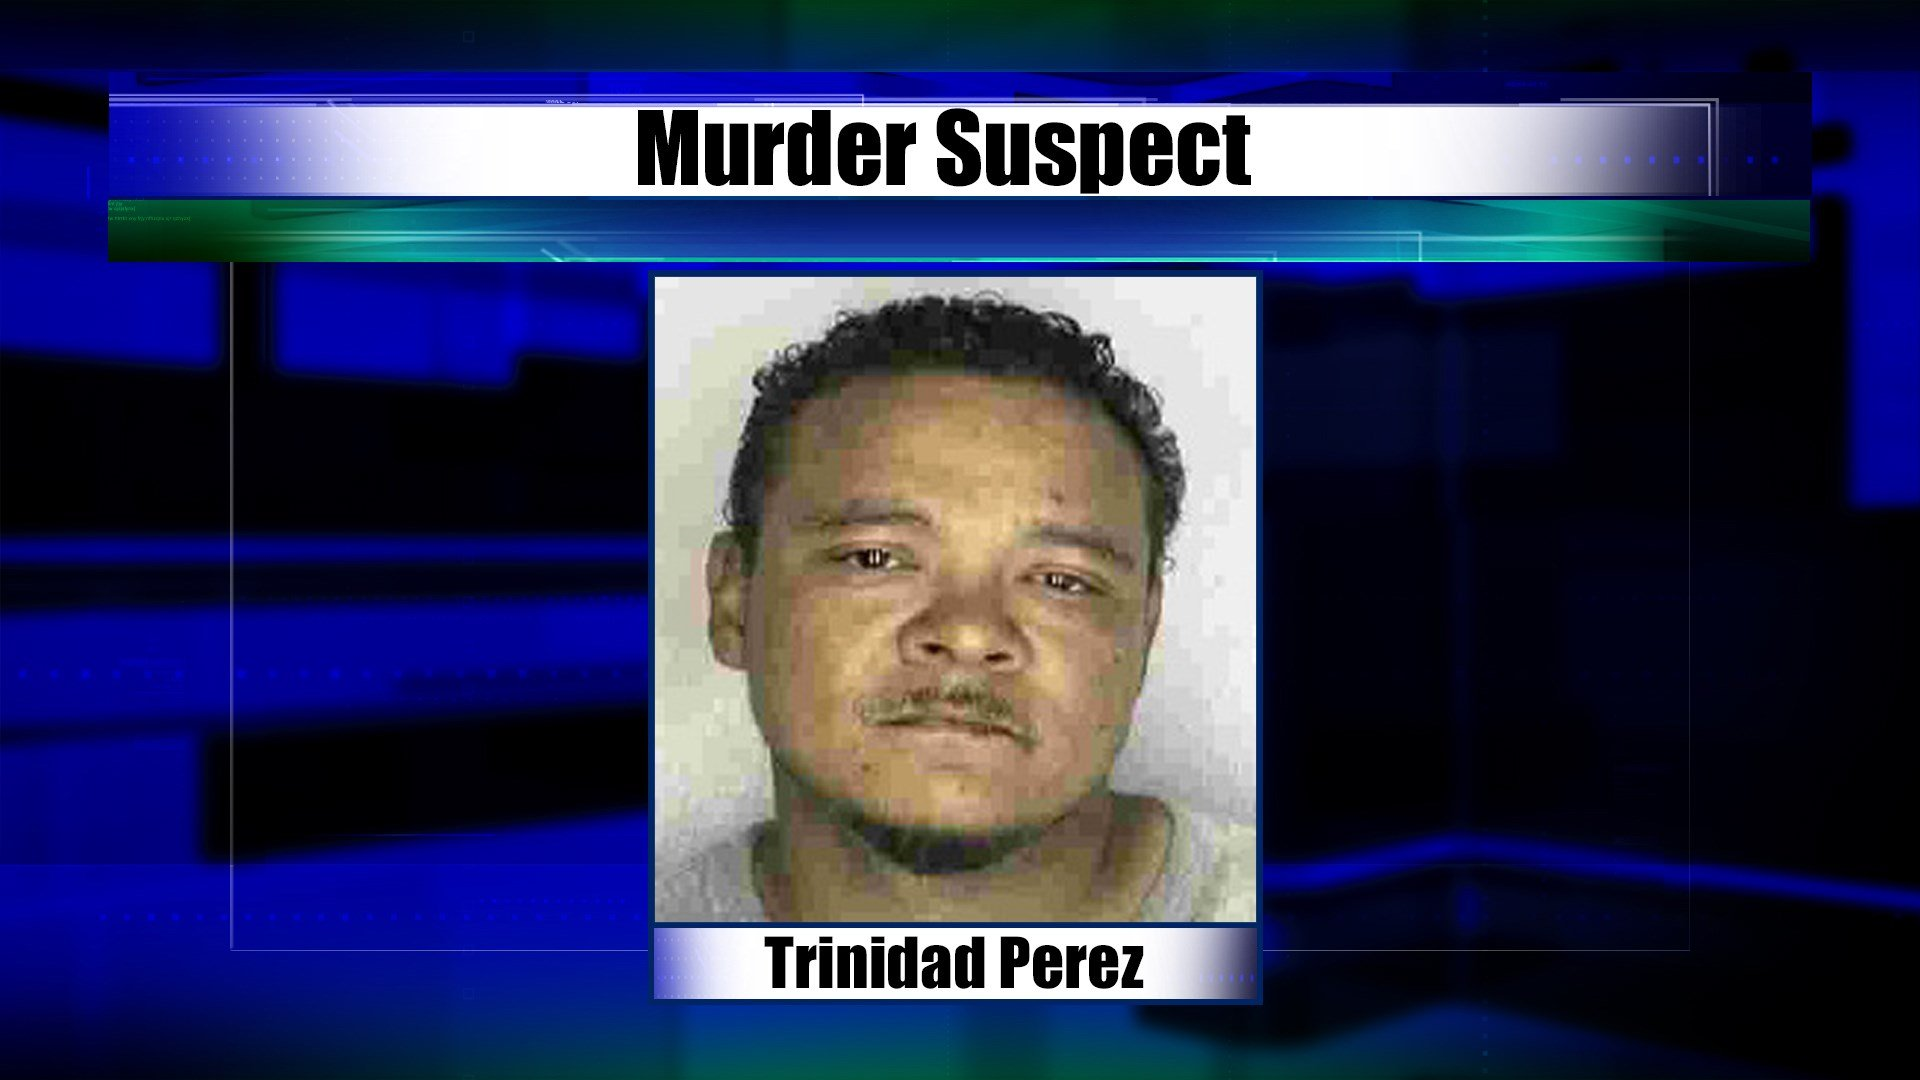 Trinidad Perez, 50, is wanted for murder